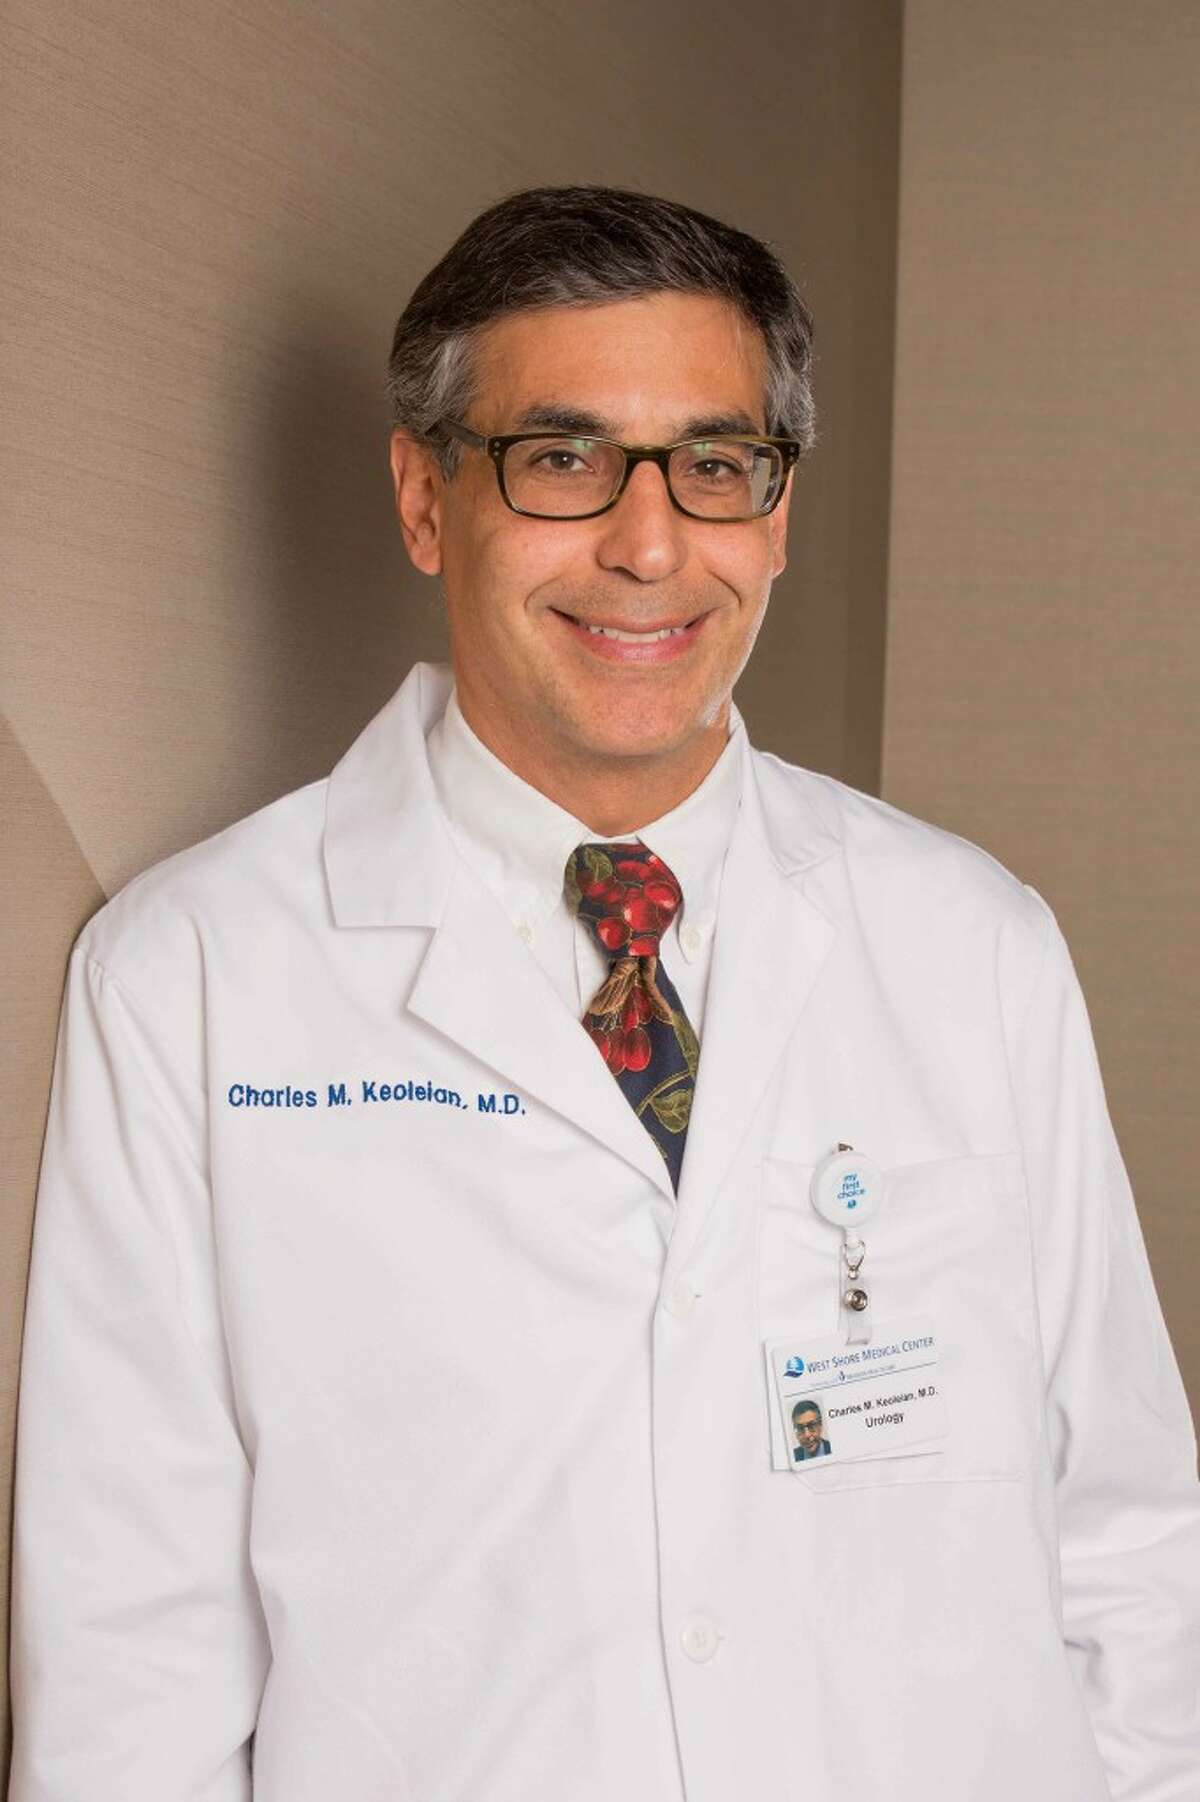 Dr. Charles Keoleian, a urologist educated at Wayne State University, recently joined the staff of West Shore Medical Center. (Courtesy photo)